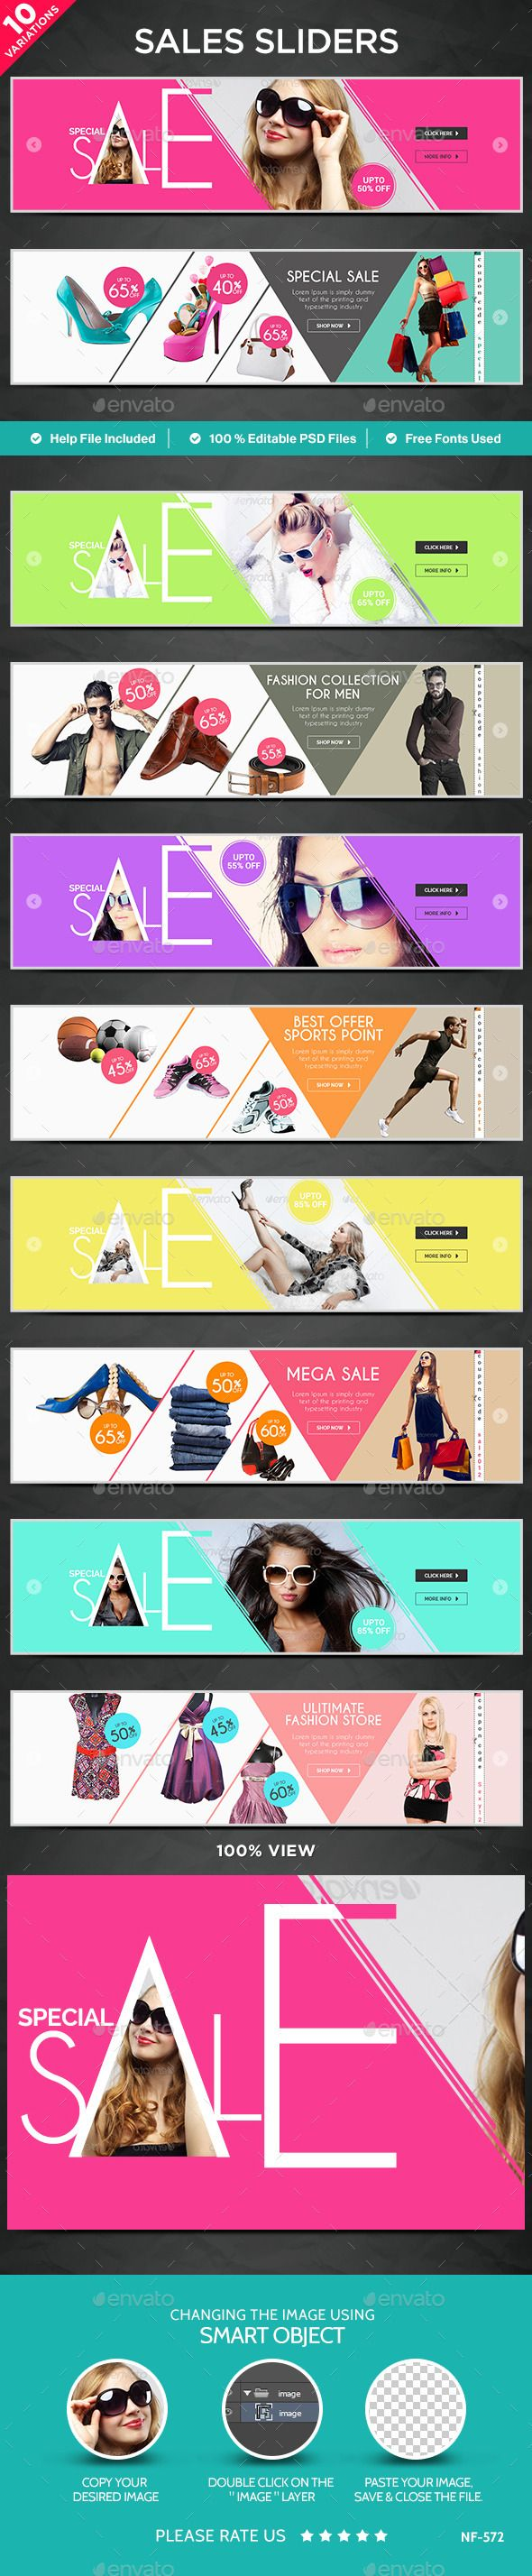 Sales Sliders - 10 Designs Template PSD. Download here…